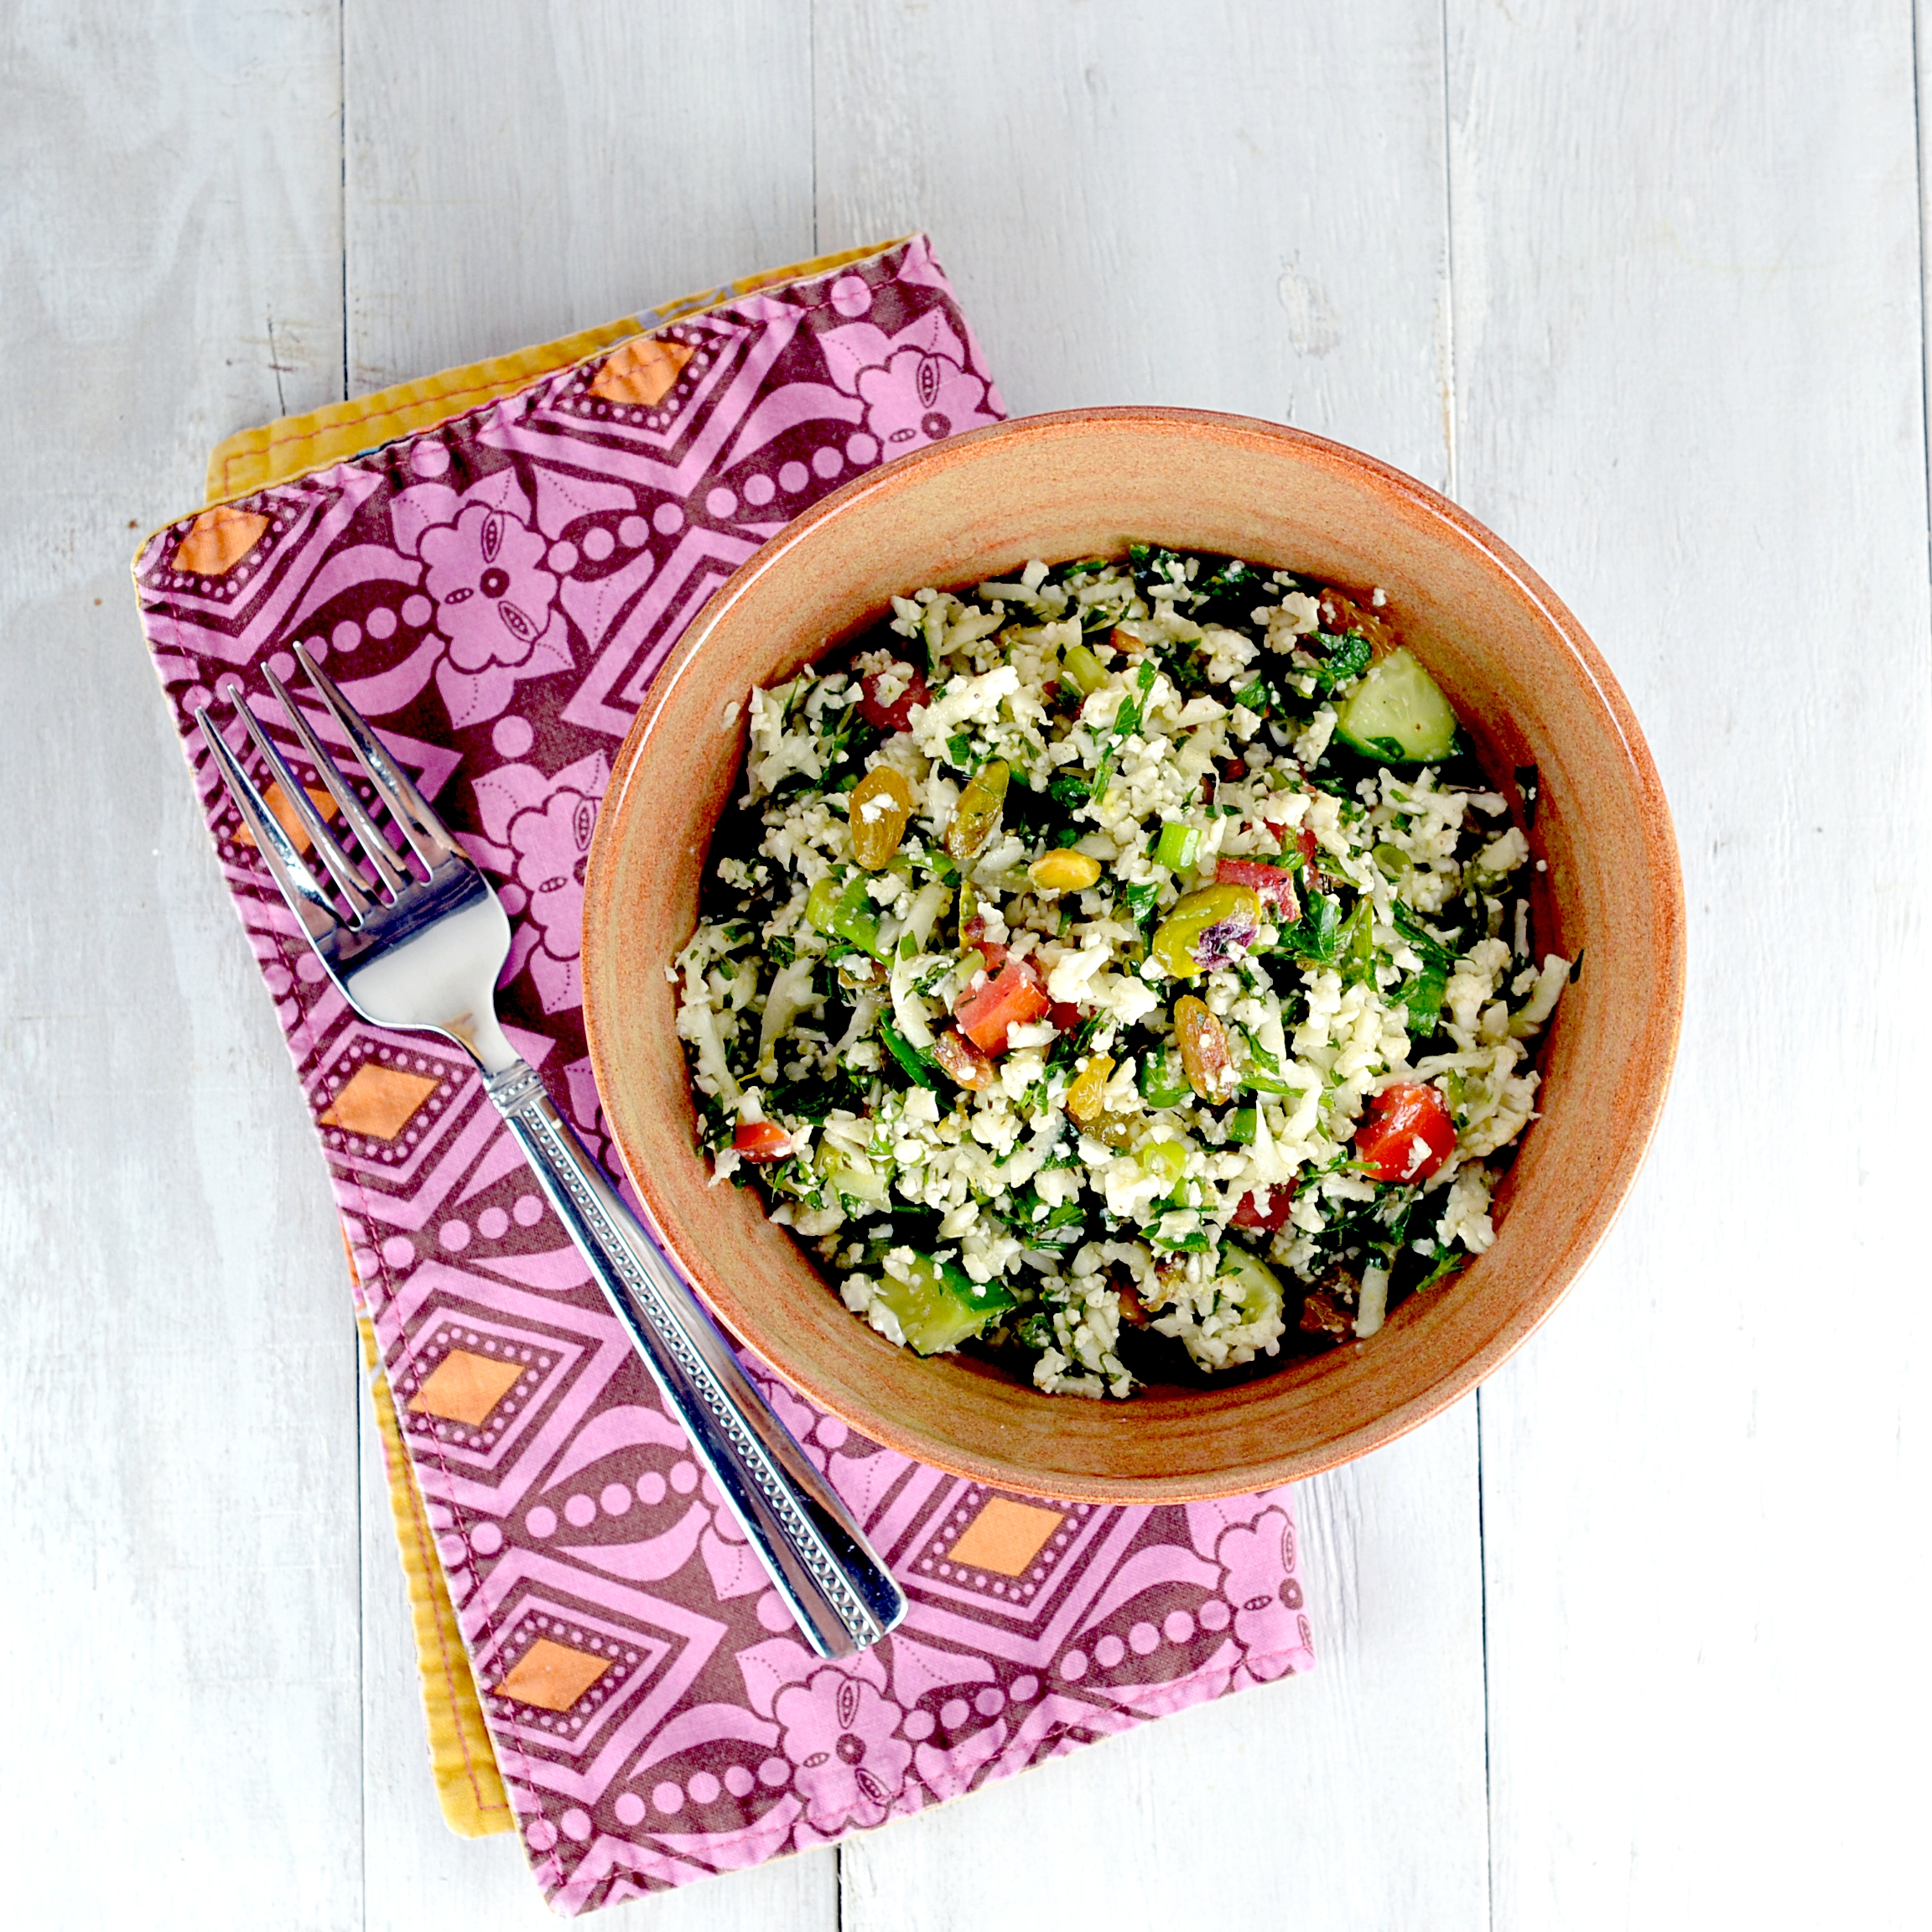 Cara's Cravings » Cauliflower Tabbouleh with Raisins & Pistachios